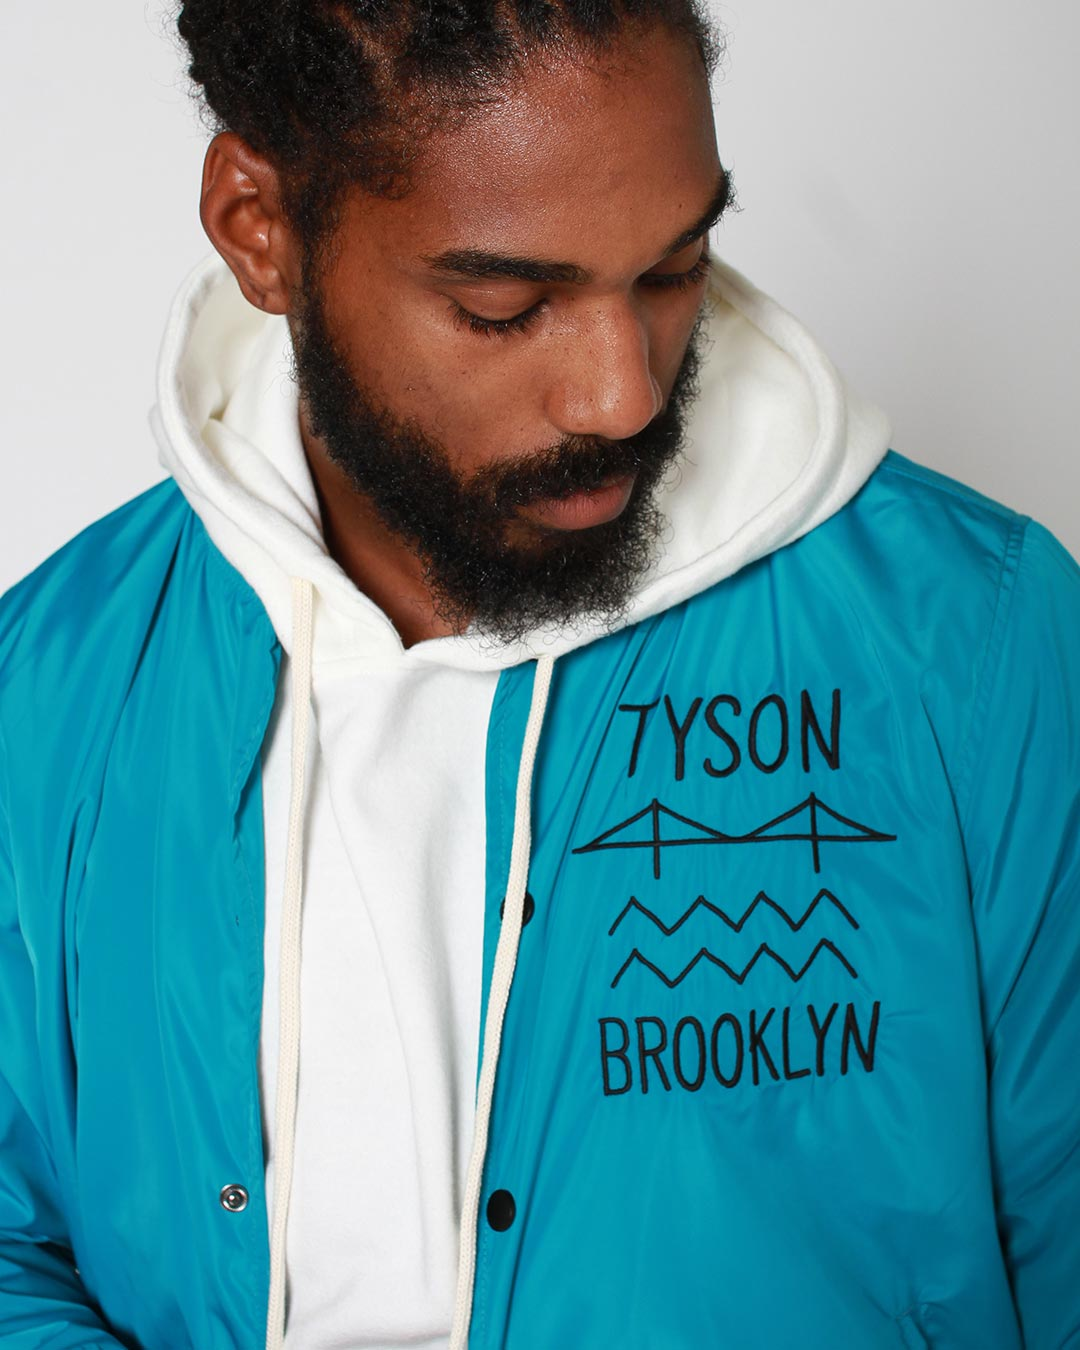 Tyson Brooklyn 'Be Real' Stadium Jacket Pre-Order